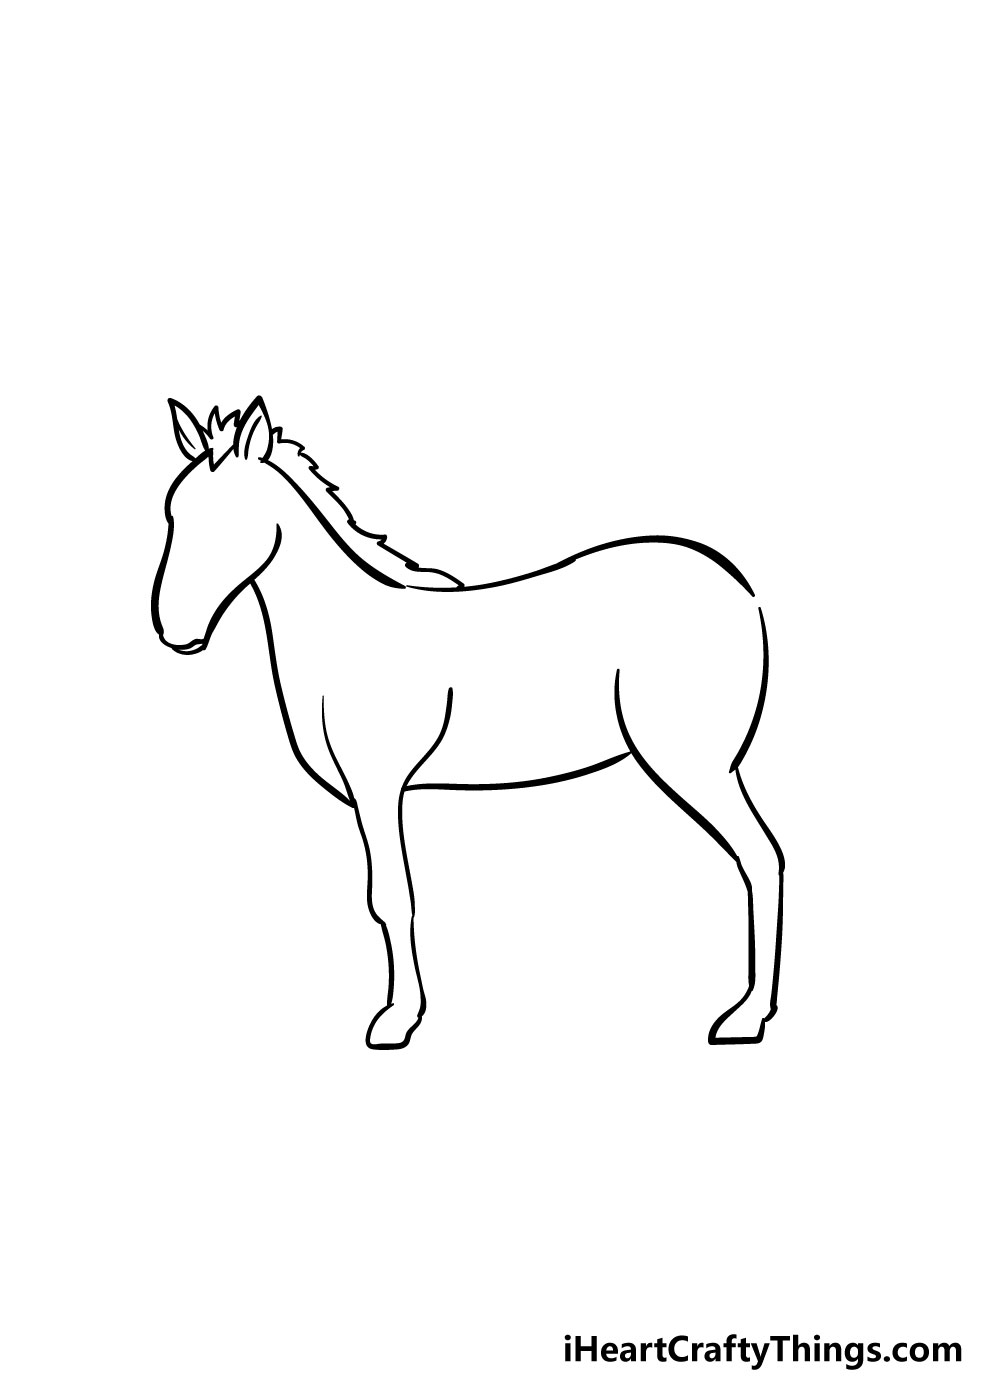 horse drawing step 5